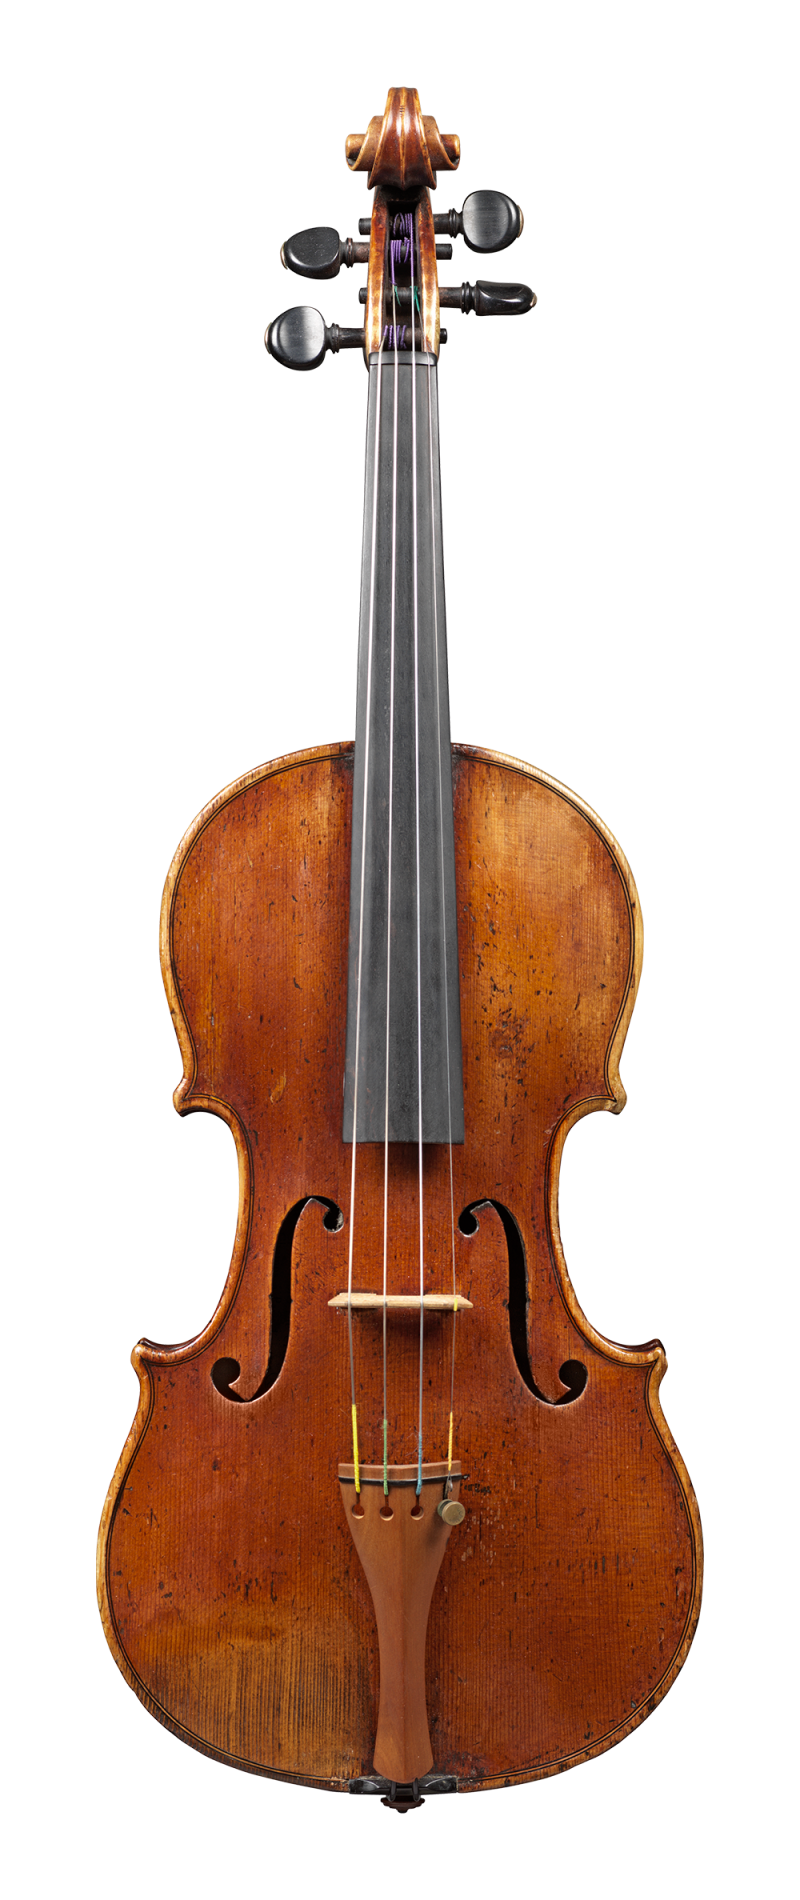 Front of a violin by Auguste Sébastien Philippe Bernardel, Paris, 1828. This violin has a very big and nuanced sound. Its warmth and easy response are striking.